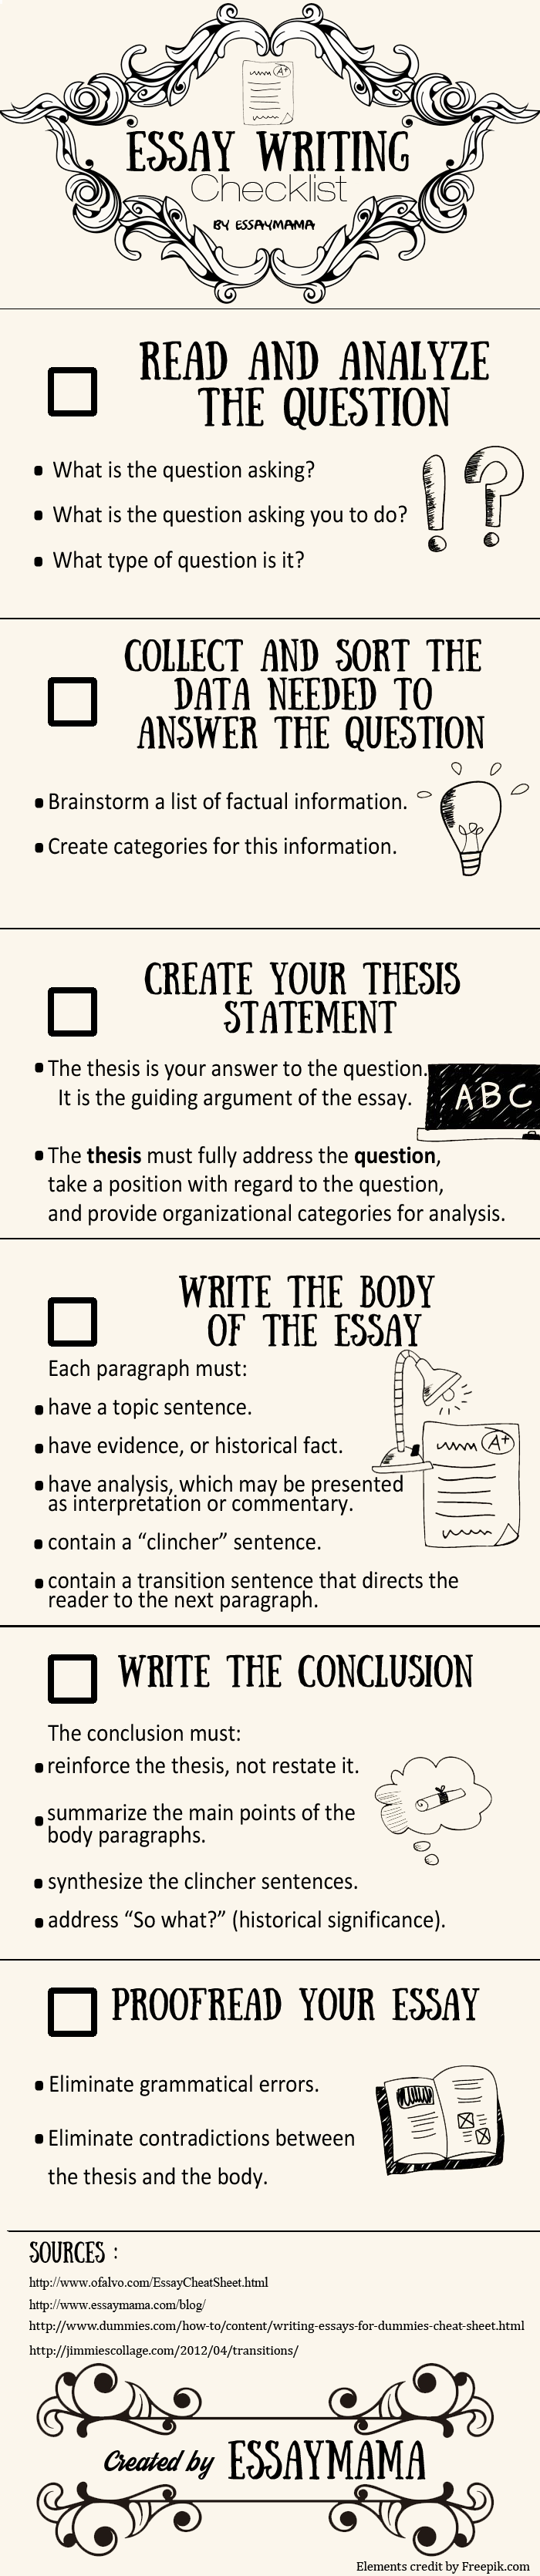 checklist final checklist for writing essays department of history